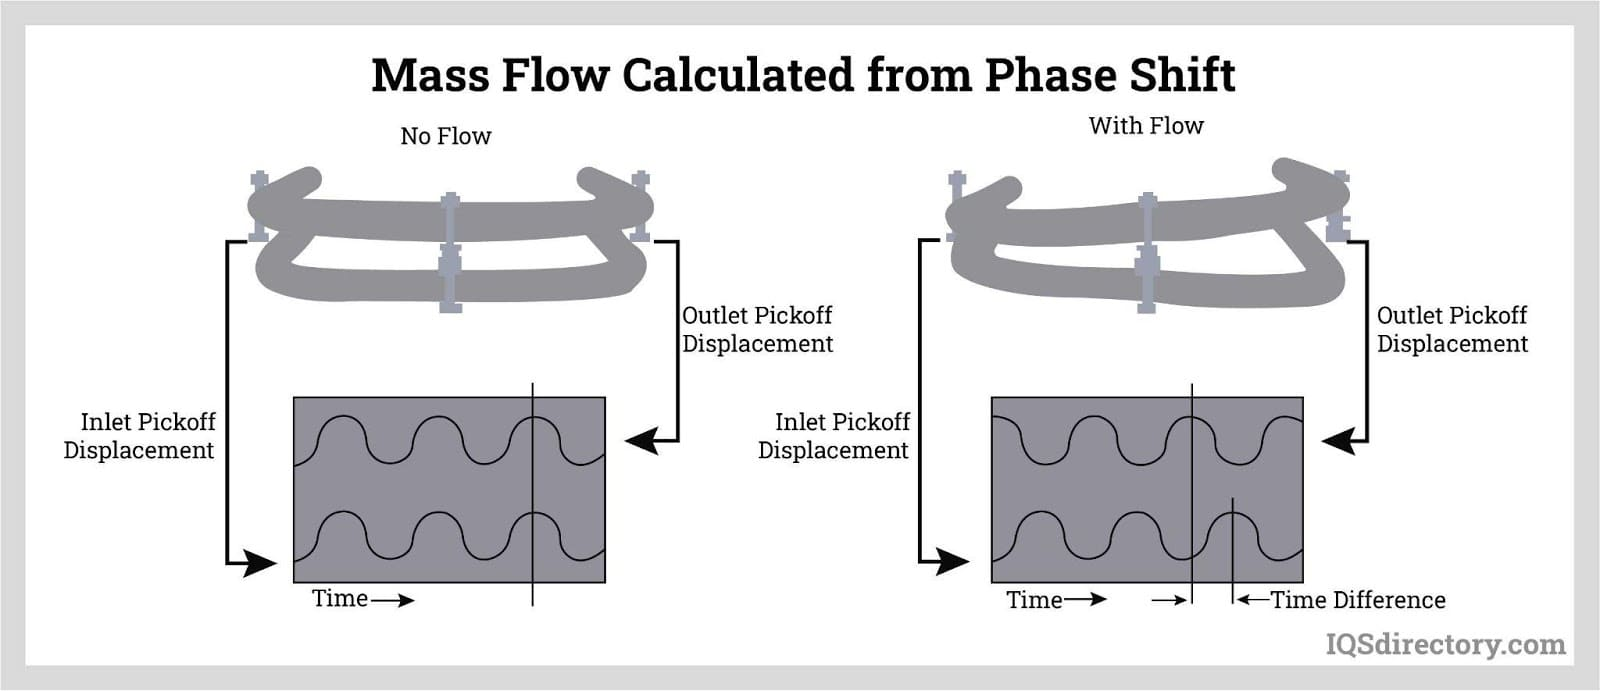 Mass Flow Calculated from Phase Shift